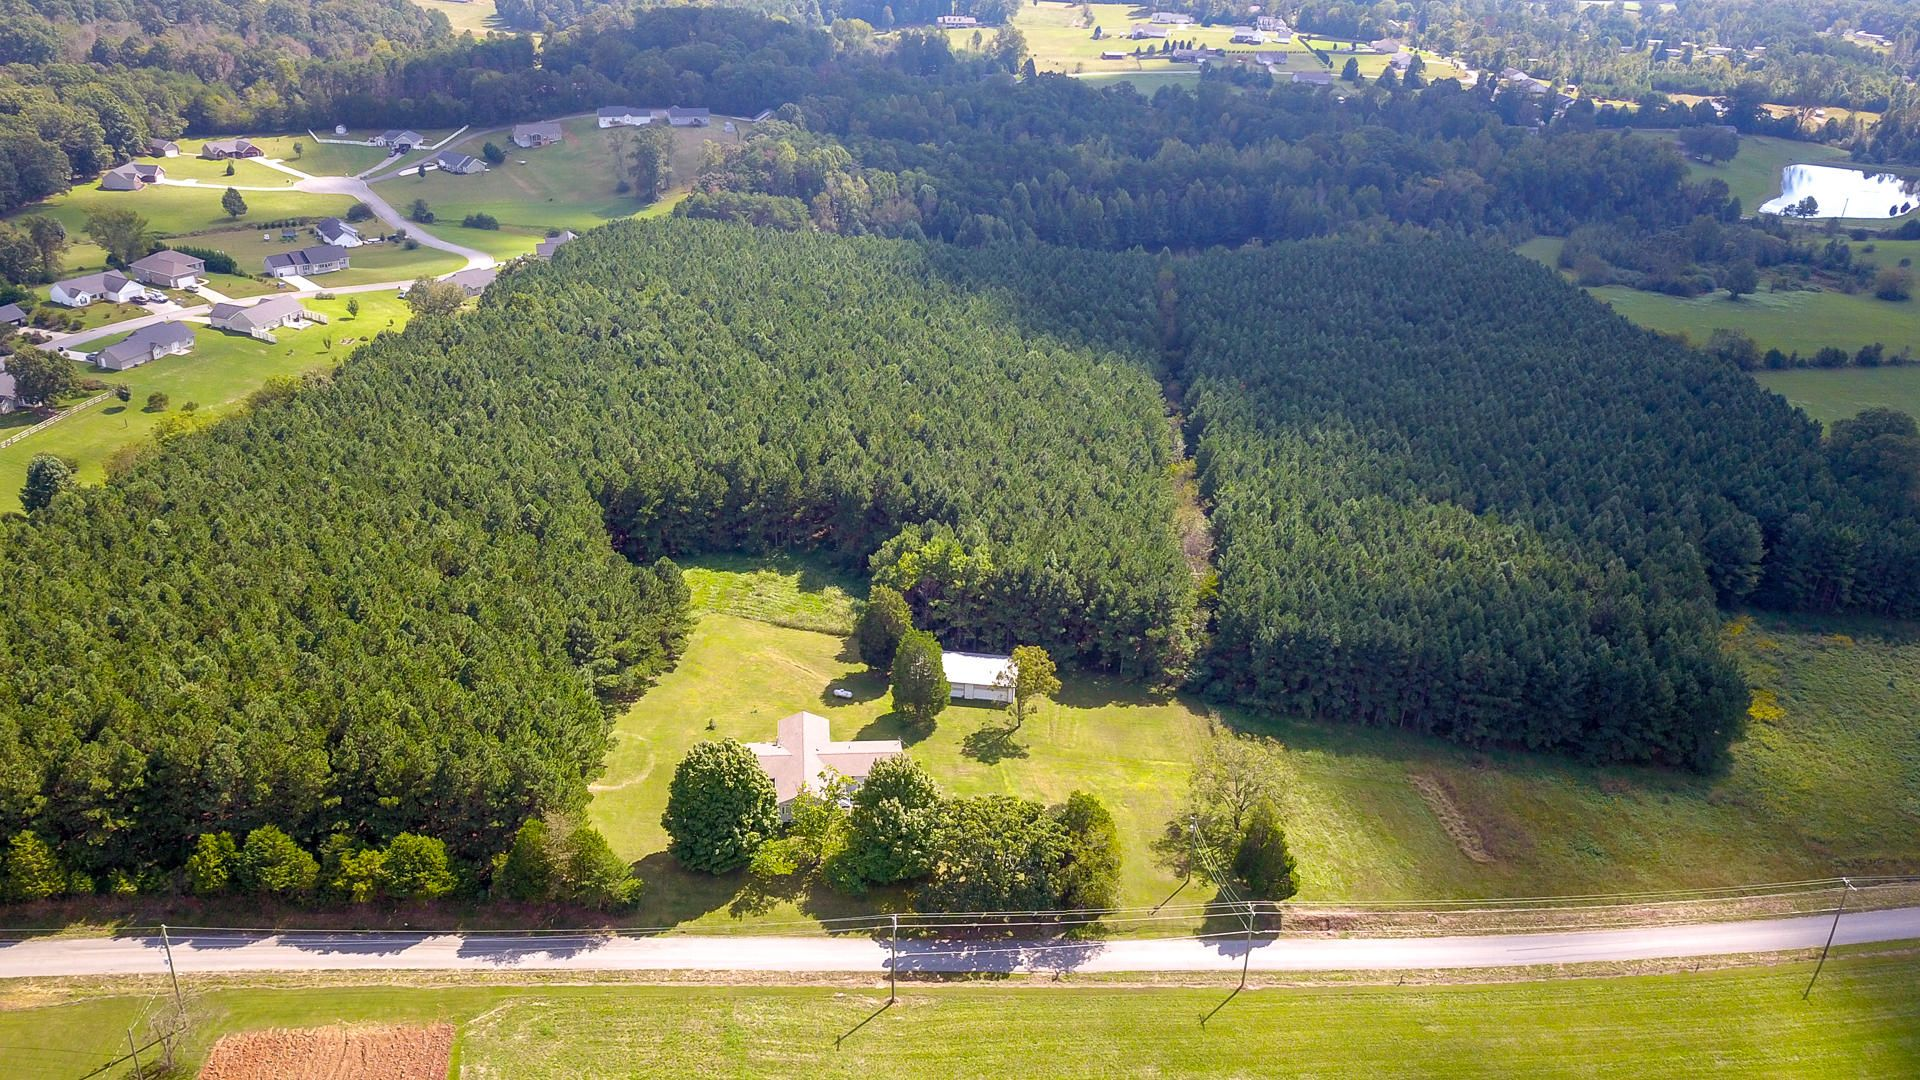 10,000 carefully planted pine trees